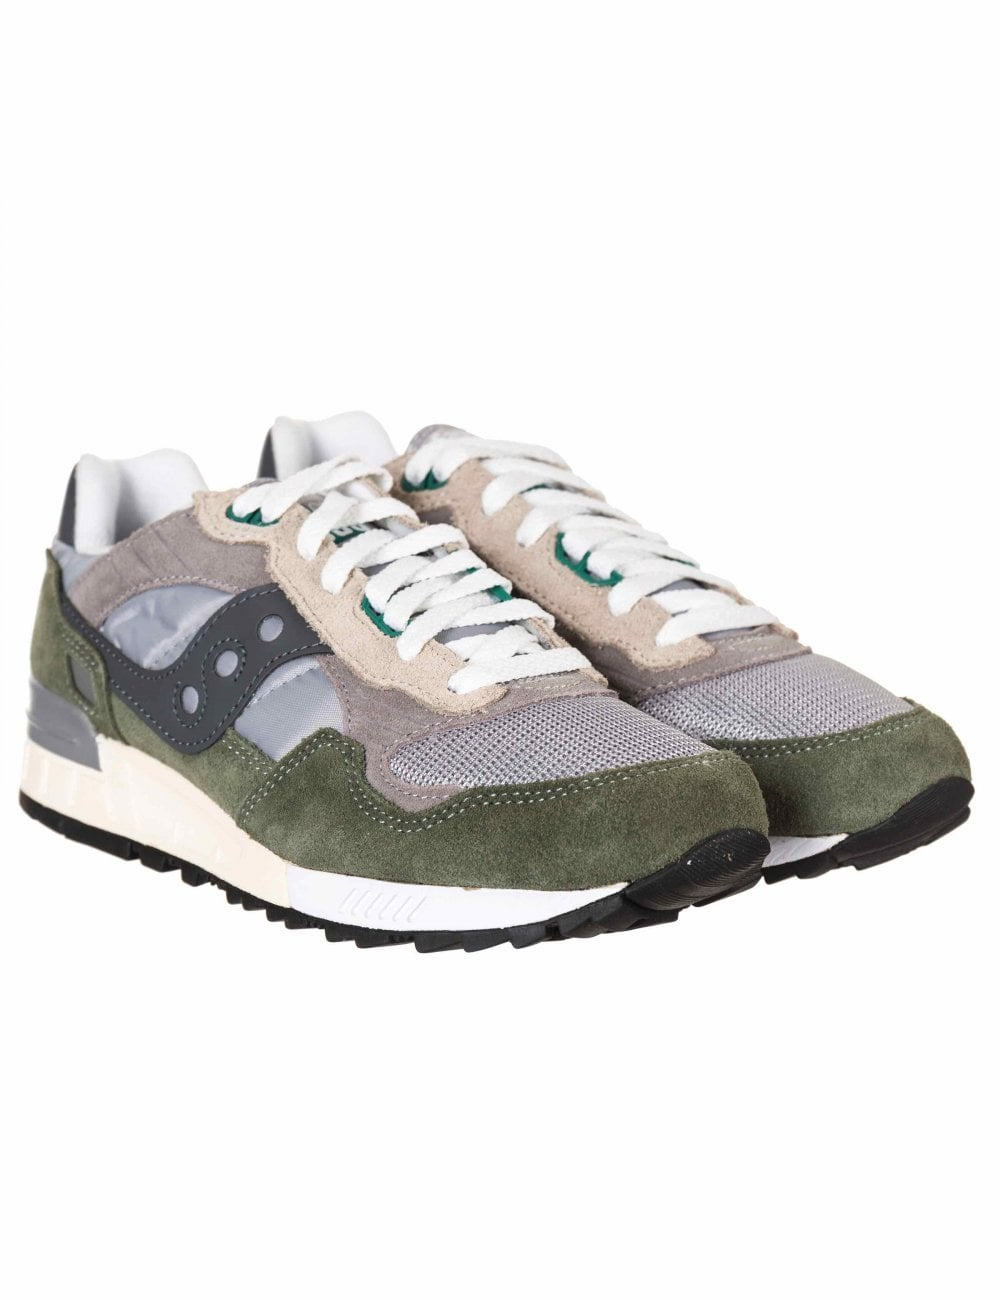 64f9b036b380 Saucony Shadow 5000 Vintage Trainers - Grey Green - Footwear from ...